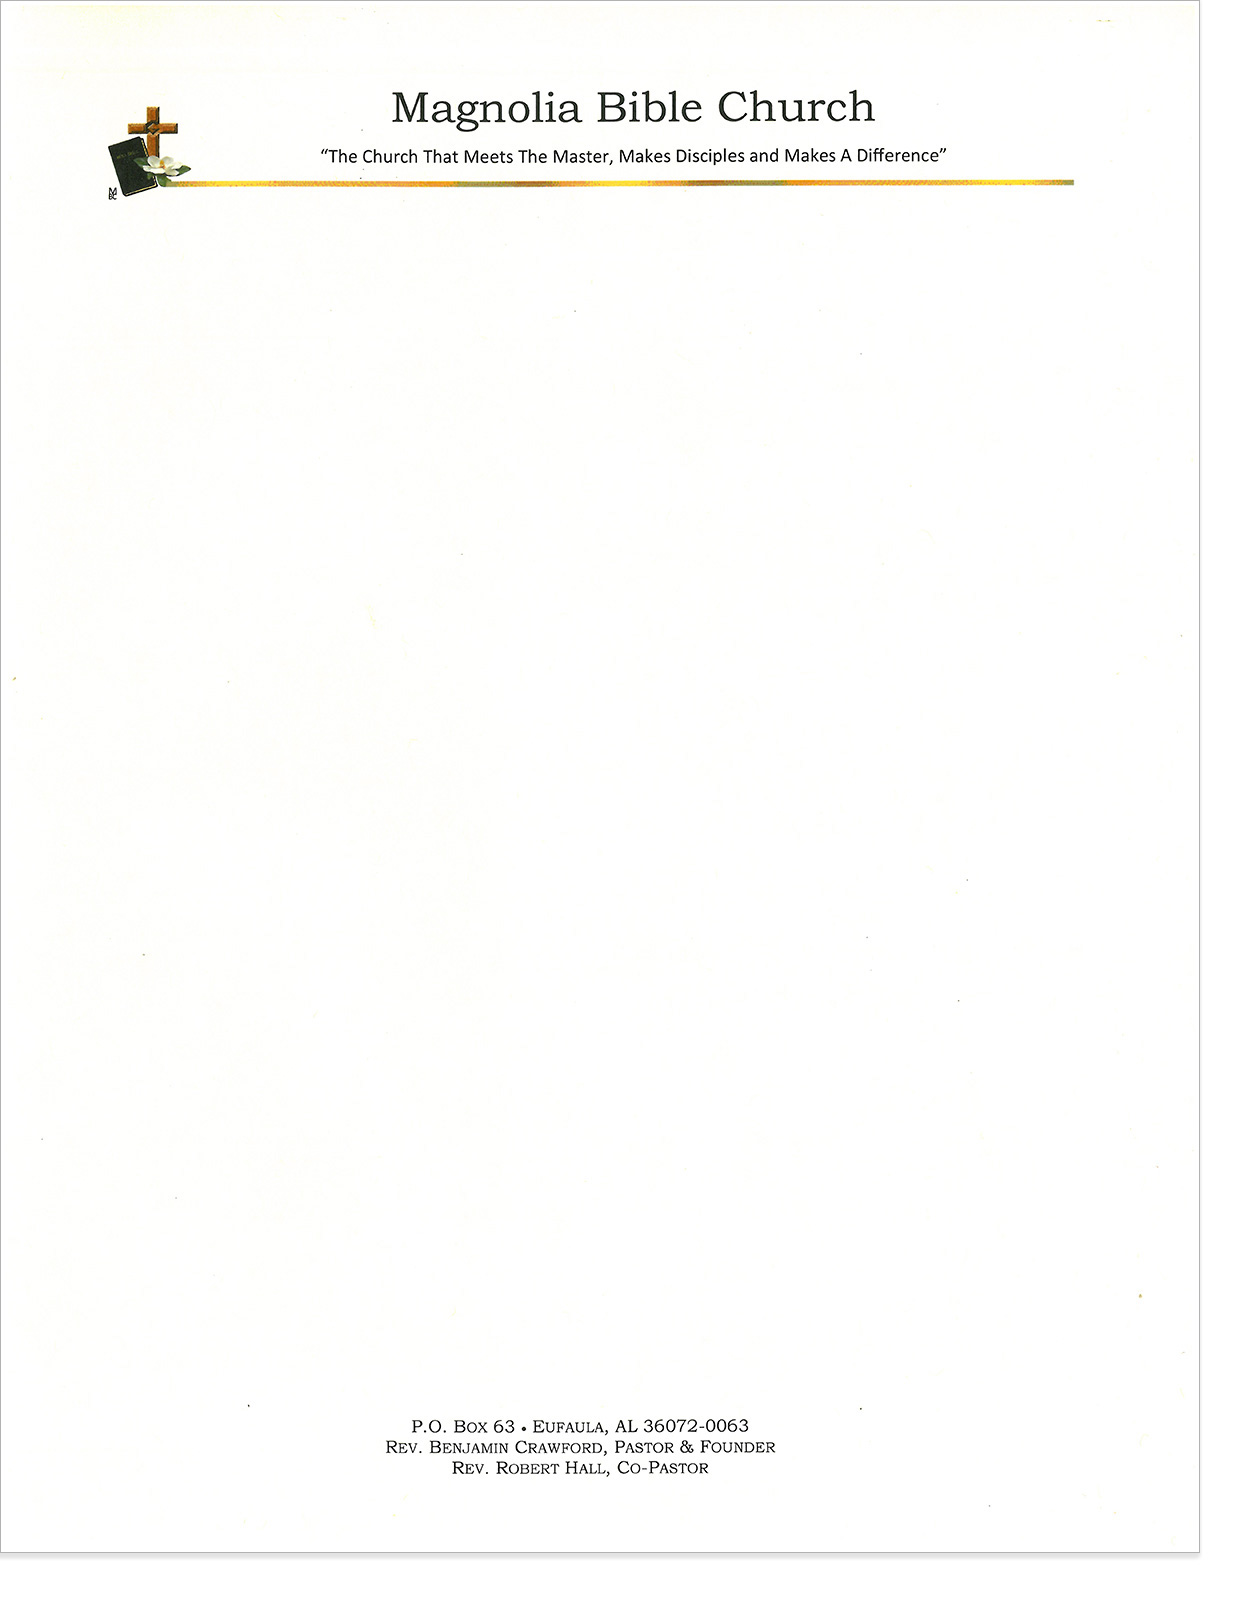 The hubbard press letterhead stationery magnolia bible church letterhead spiritdancerdesigns Choice Image